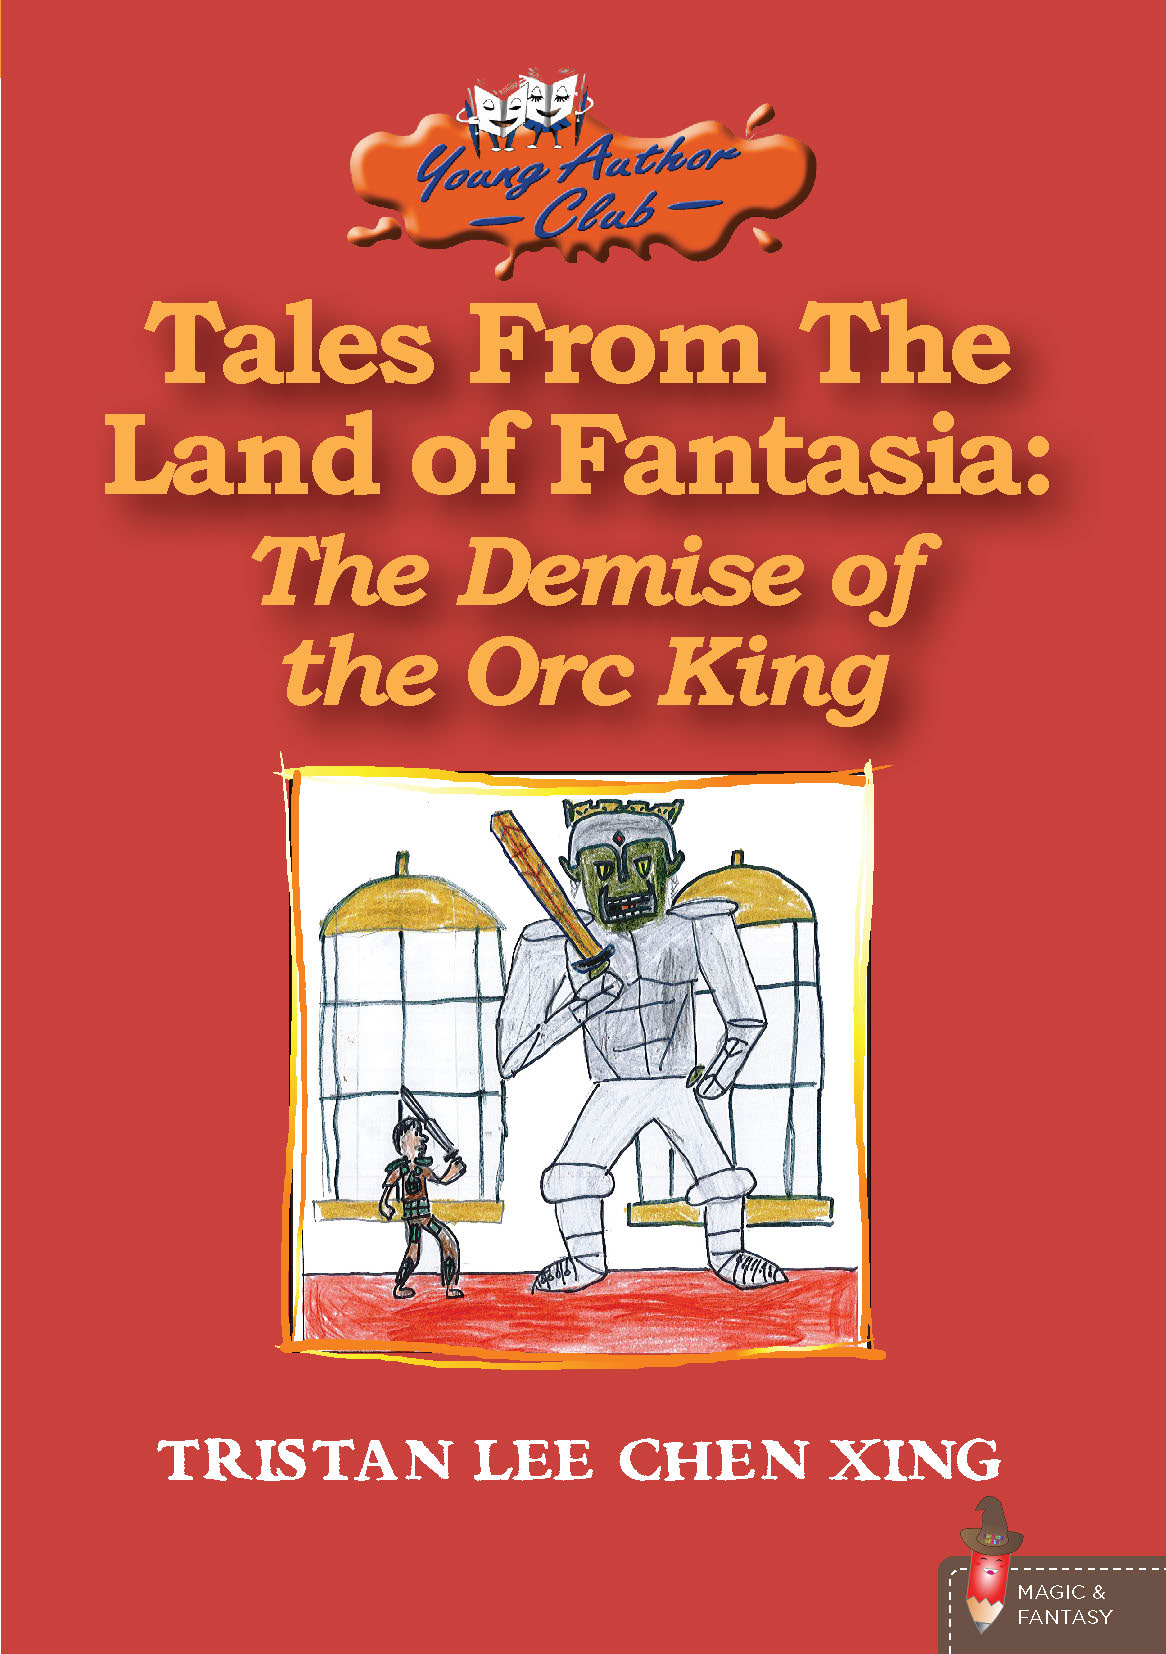 Tales from the Land of Fantasia: The Demise of the Orc King